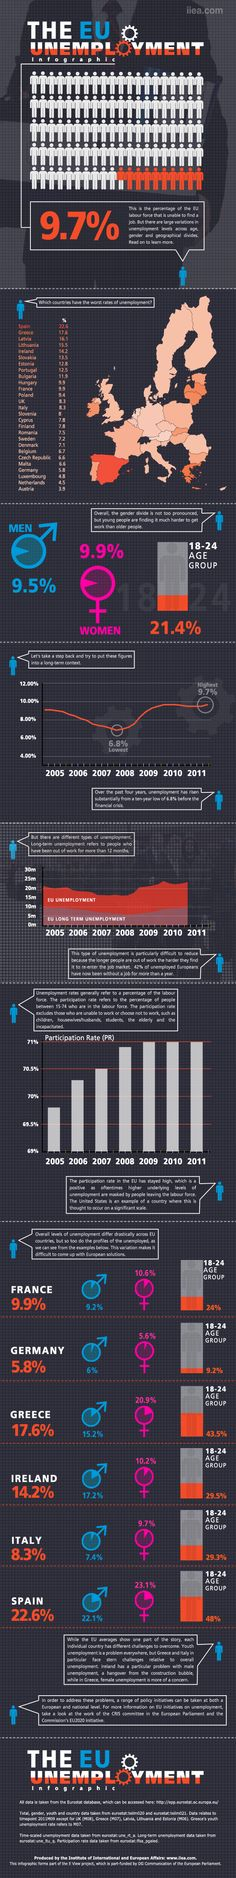 IIEA's infographic about EU unemployment